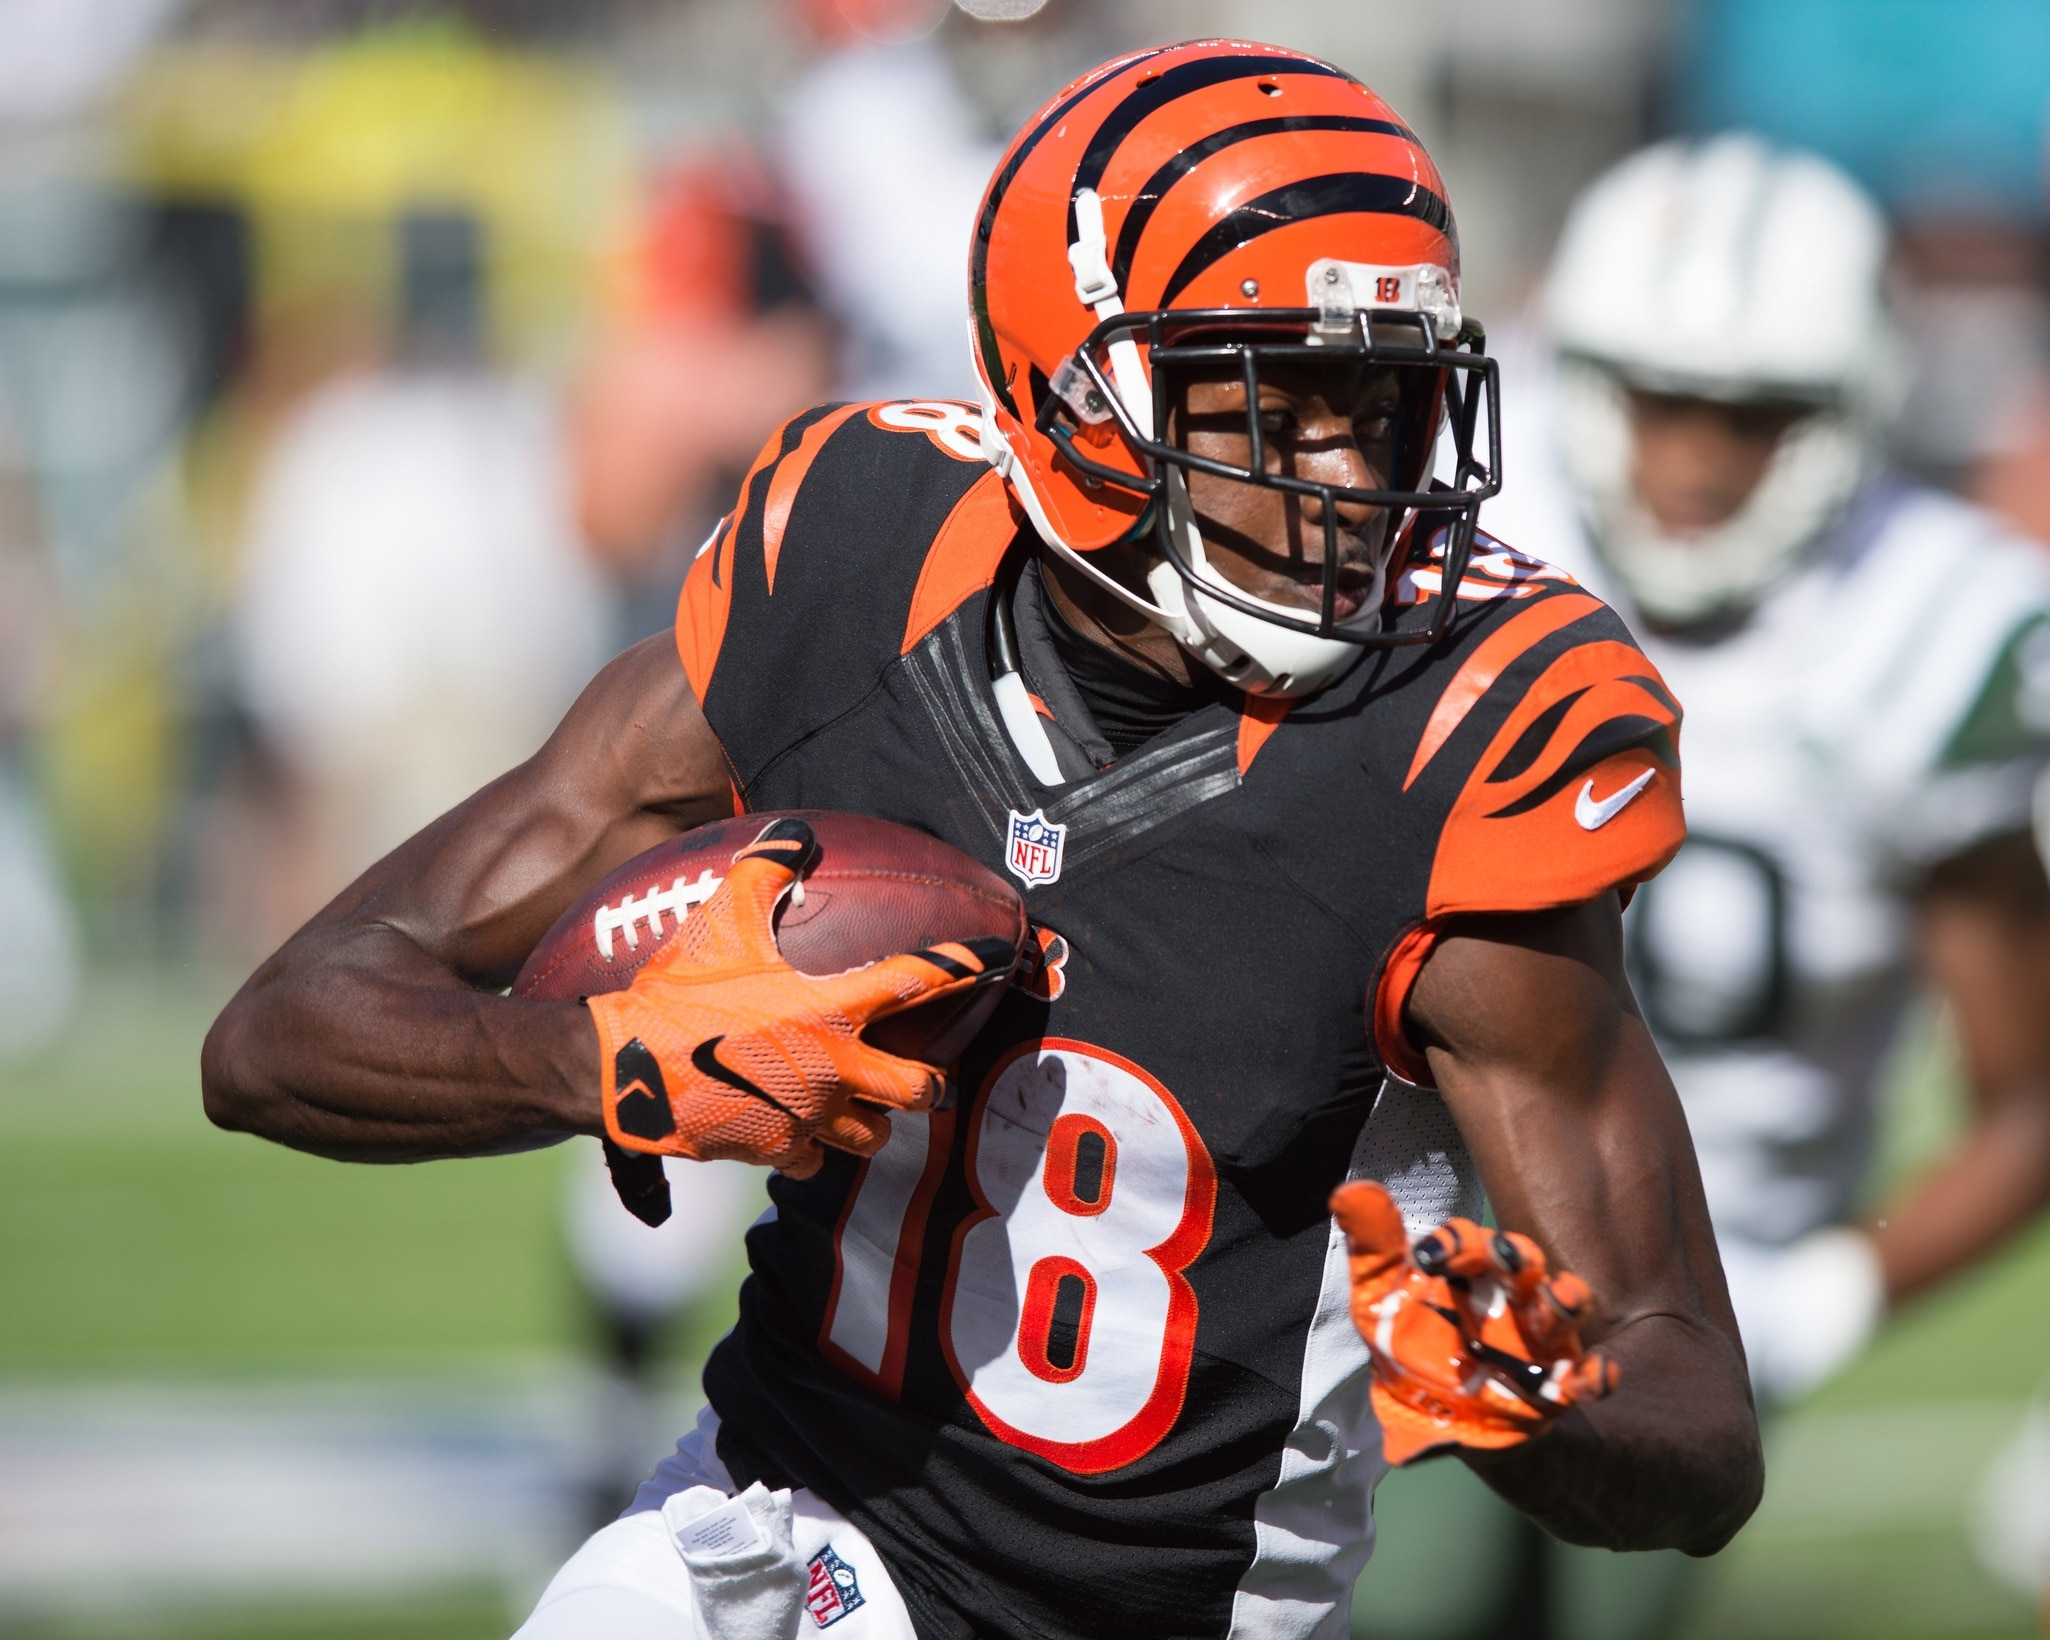 AJ Green Jalen Ramsey both ejected for fighting